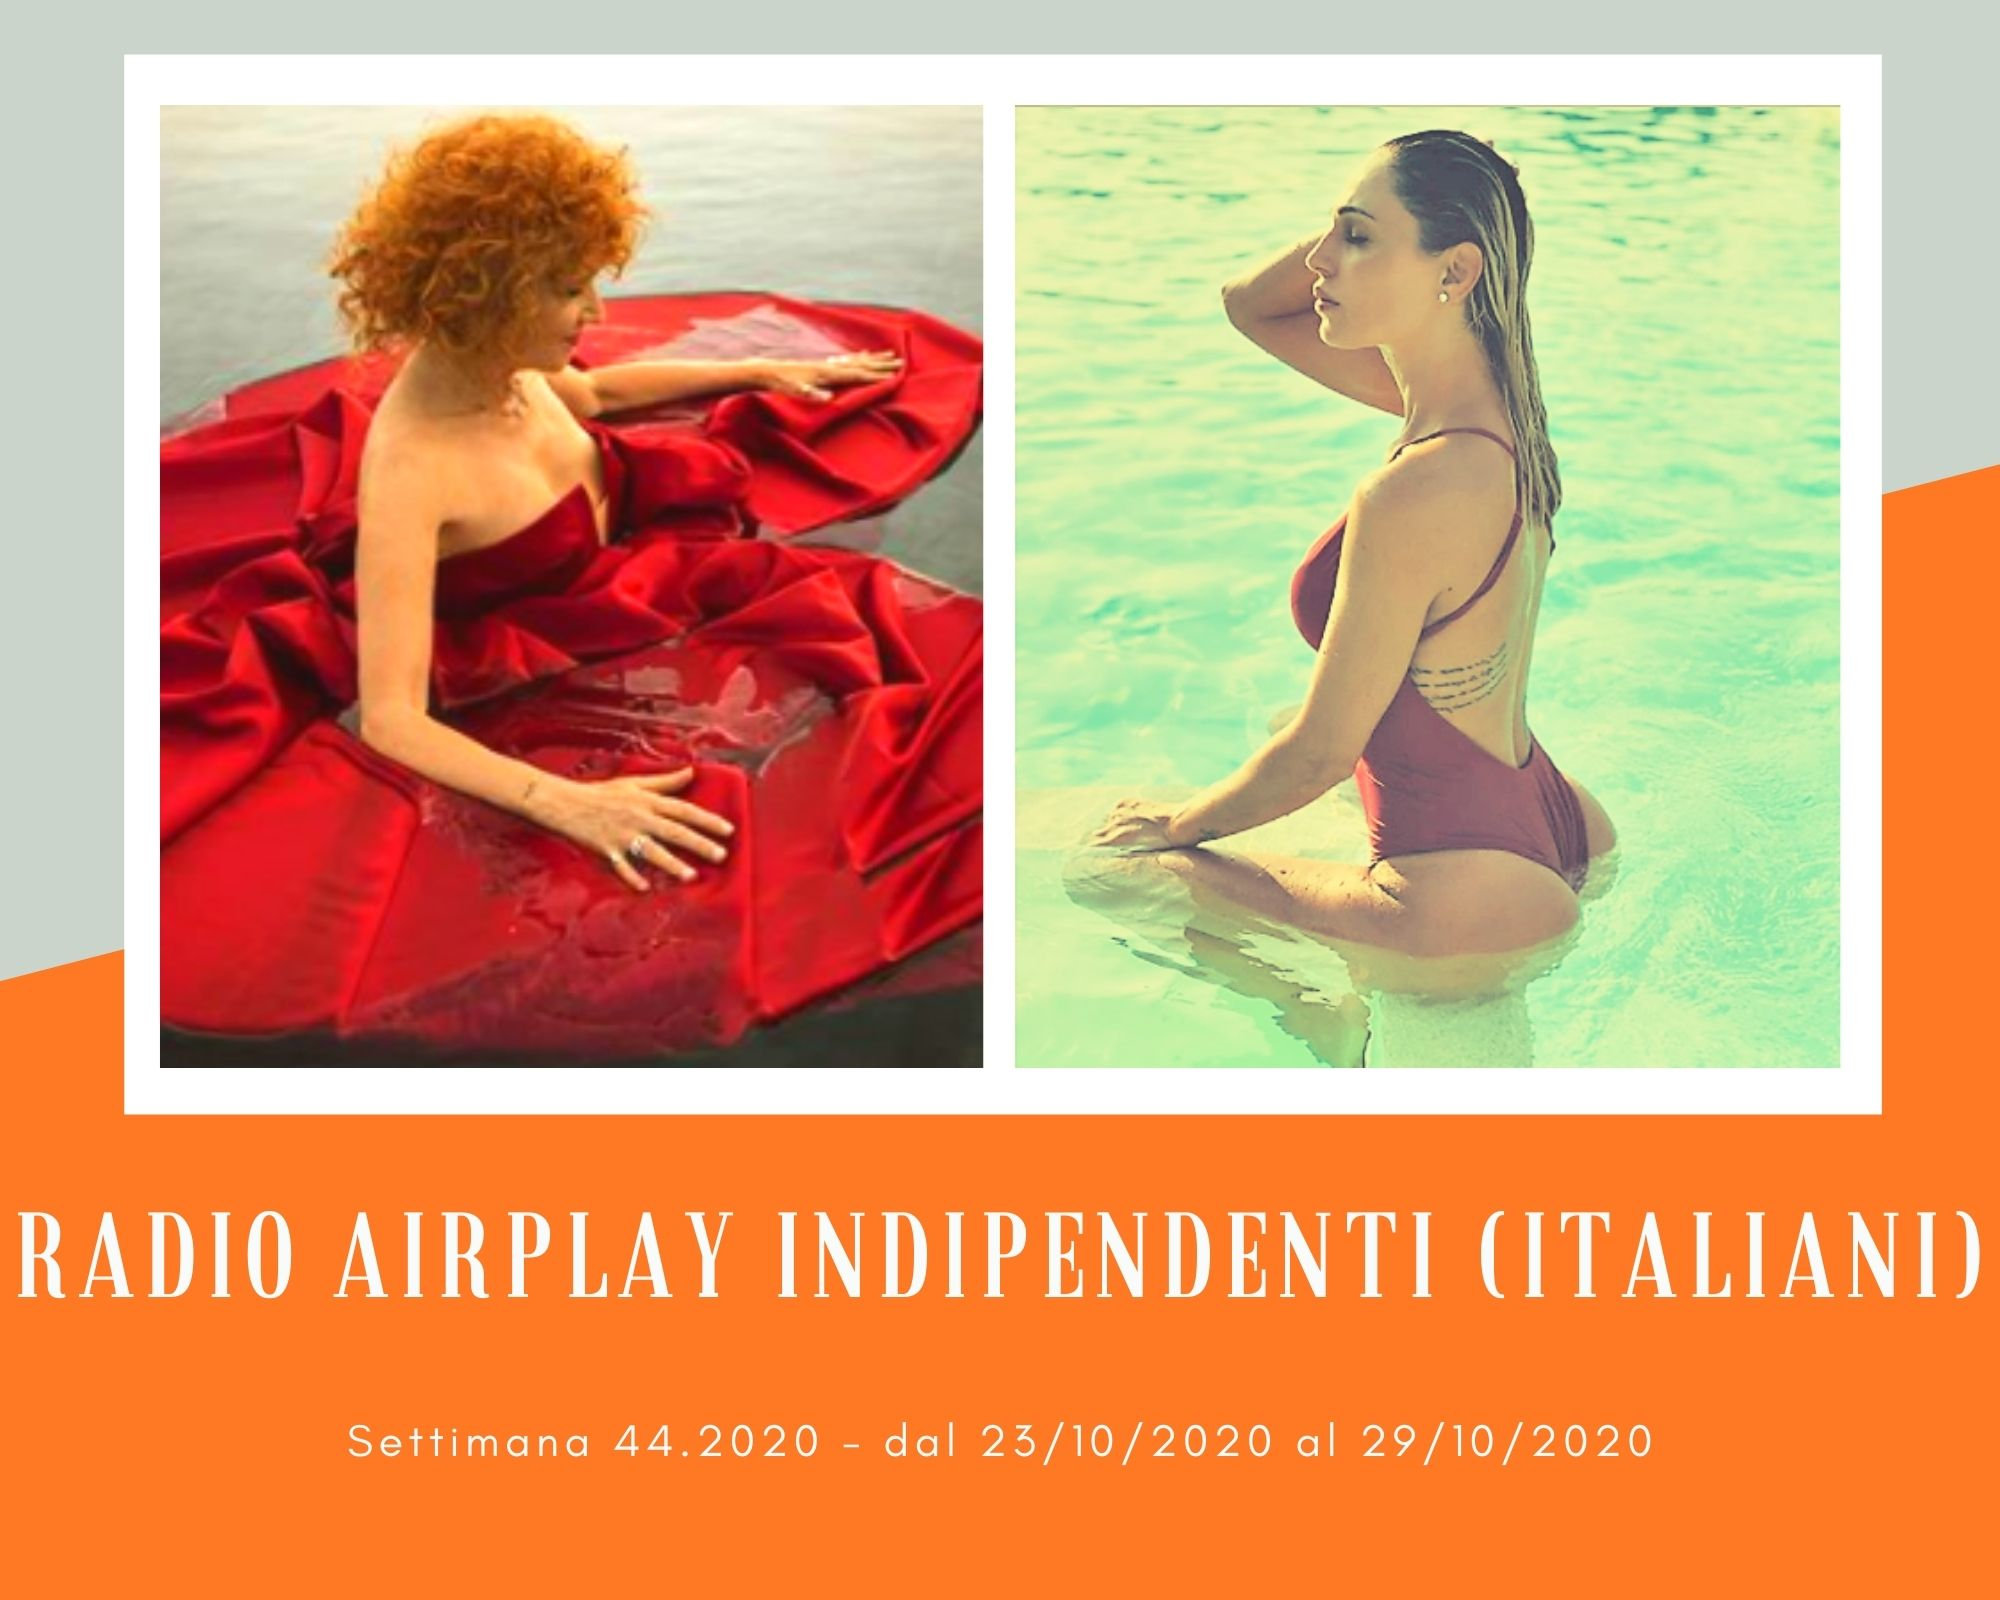 Classifica RADIO AIRPLAY Indipendenti Italiani, week 44. Irene Grandi supera Anna Tatangelo, Bungaro soccorre Fiorella Mannoia